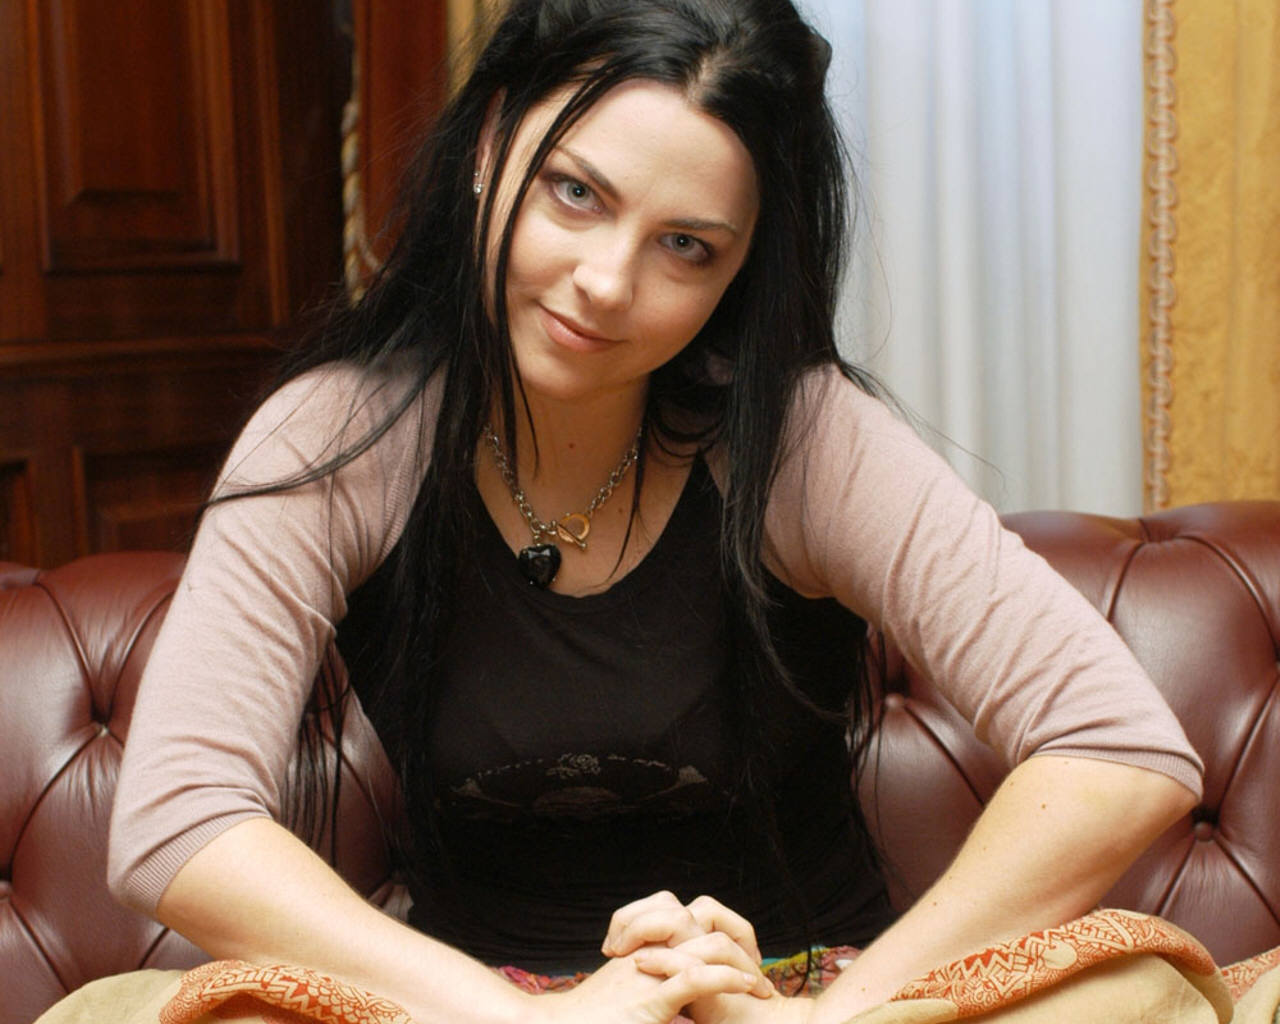 Amy Lee - Wallpaper Hot